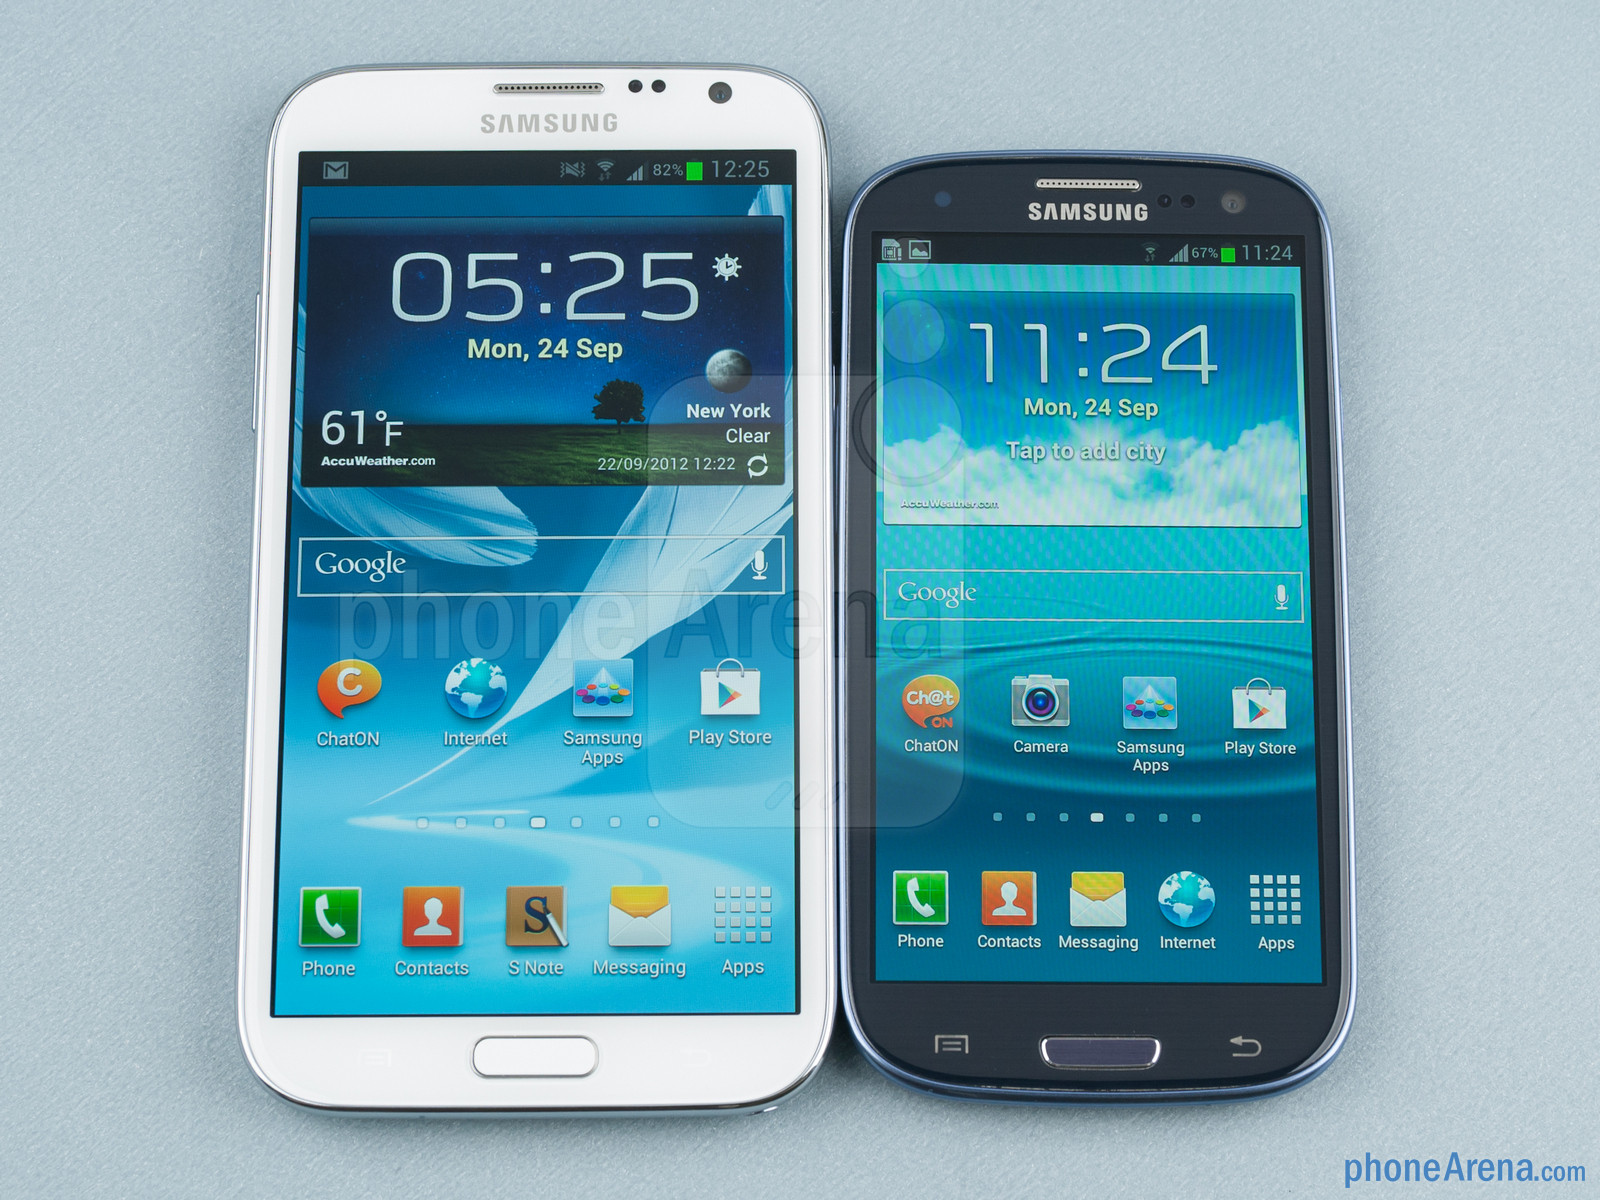 Galaxy Note vs. Galaxy S